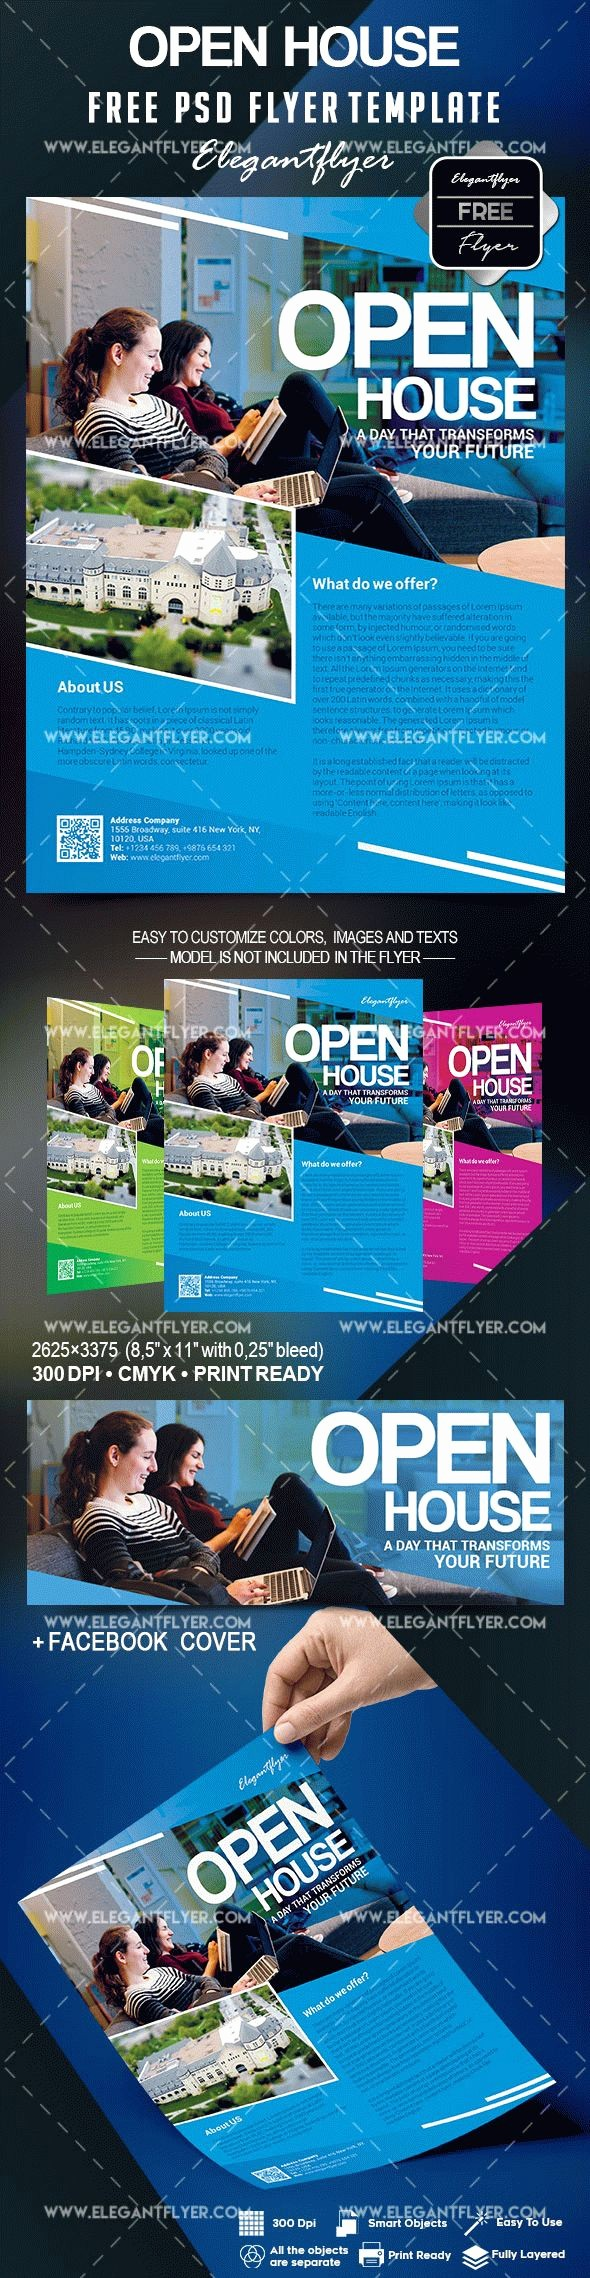 Open House Flyer Template Free Luxury Open House Flyer Template Free – by Elegantflyer